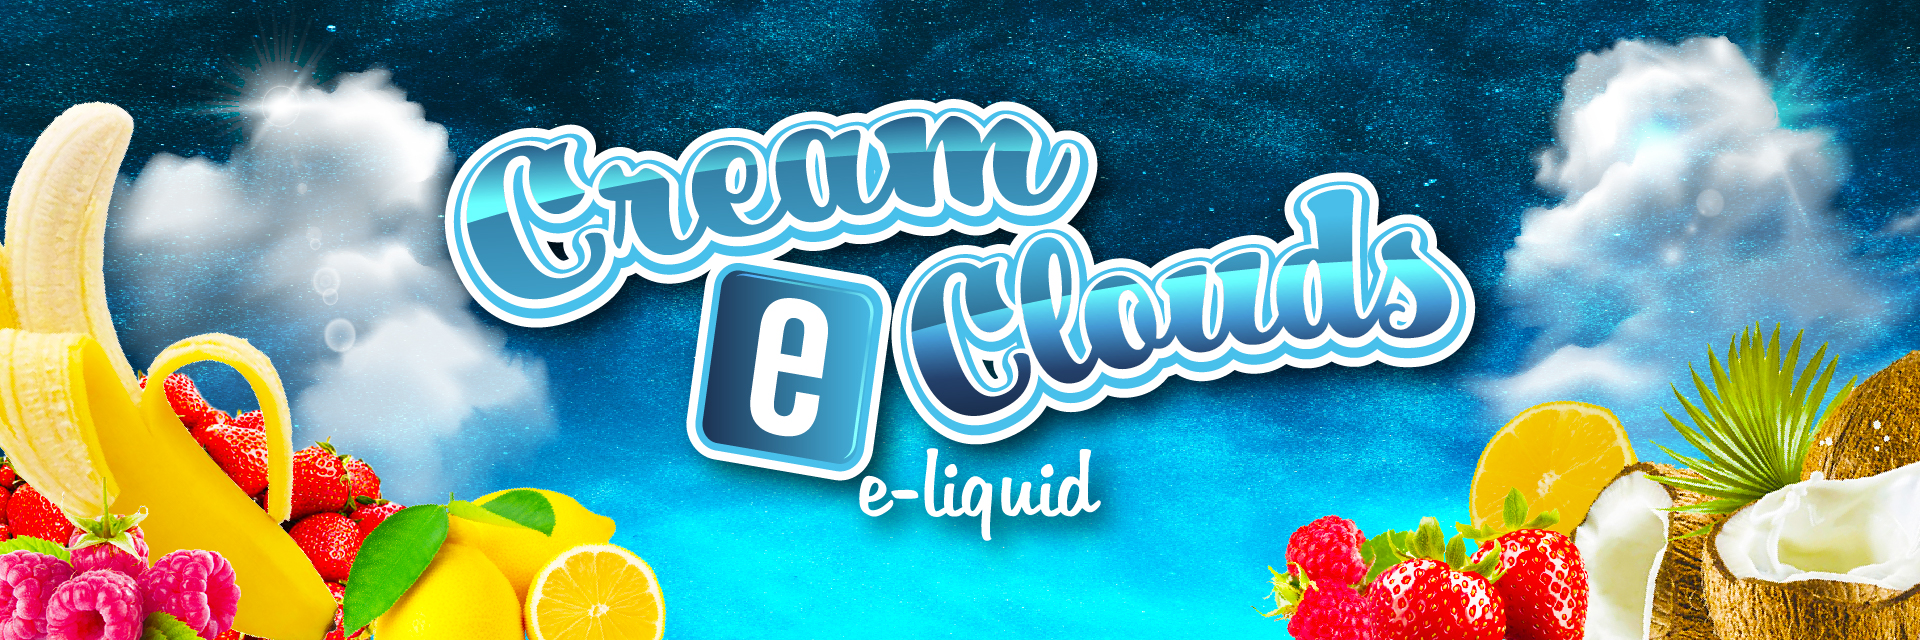 Flavor Vapors | Wholesale E-Liquids | Cream E Clouds